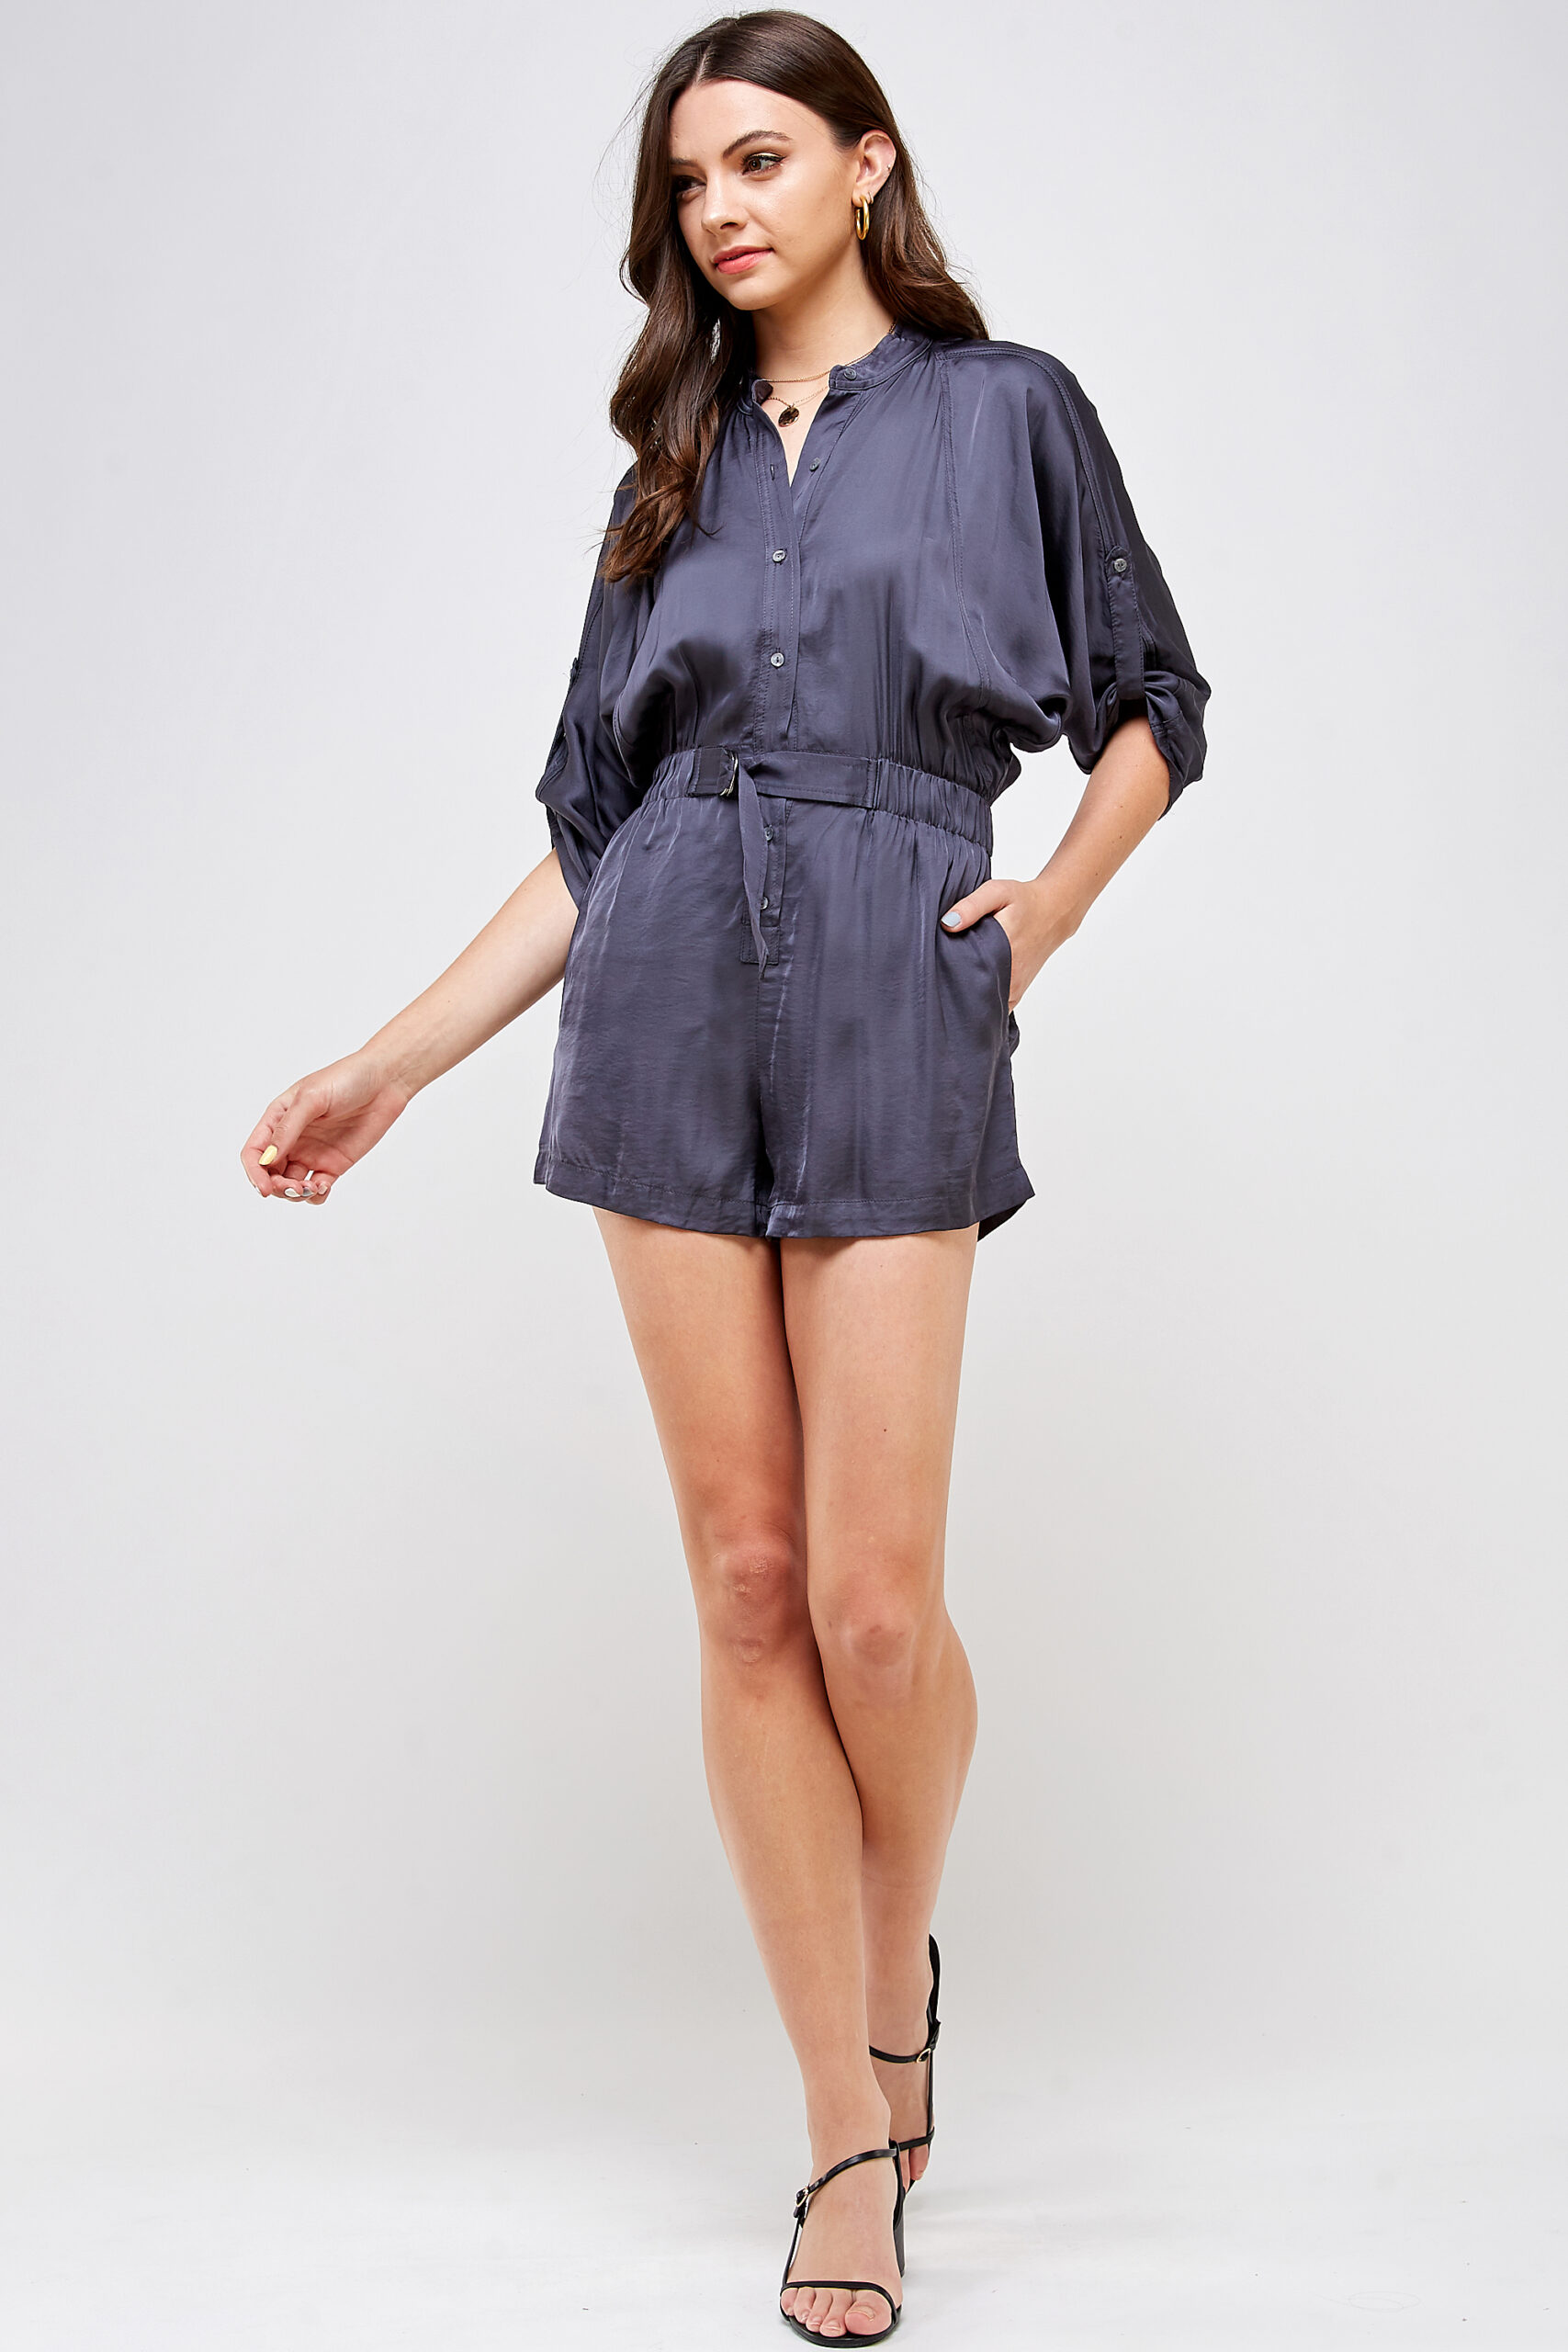 100% Polyester Belted Romper Roll Up Sleeves Button Up Front View Full